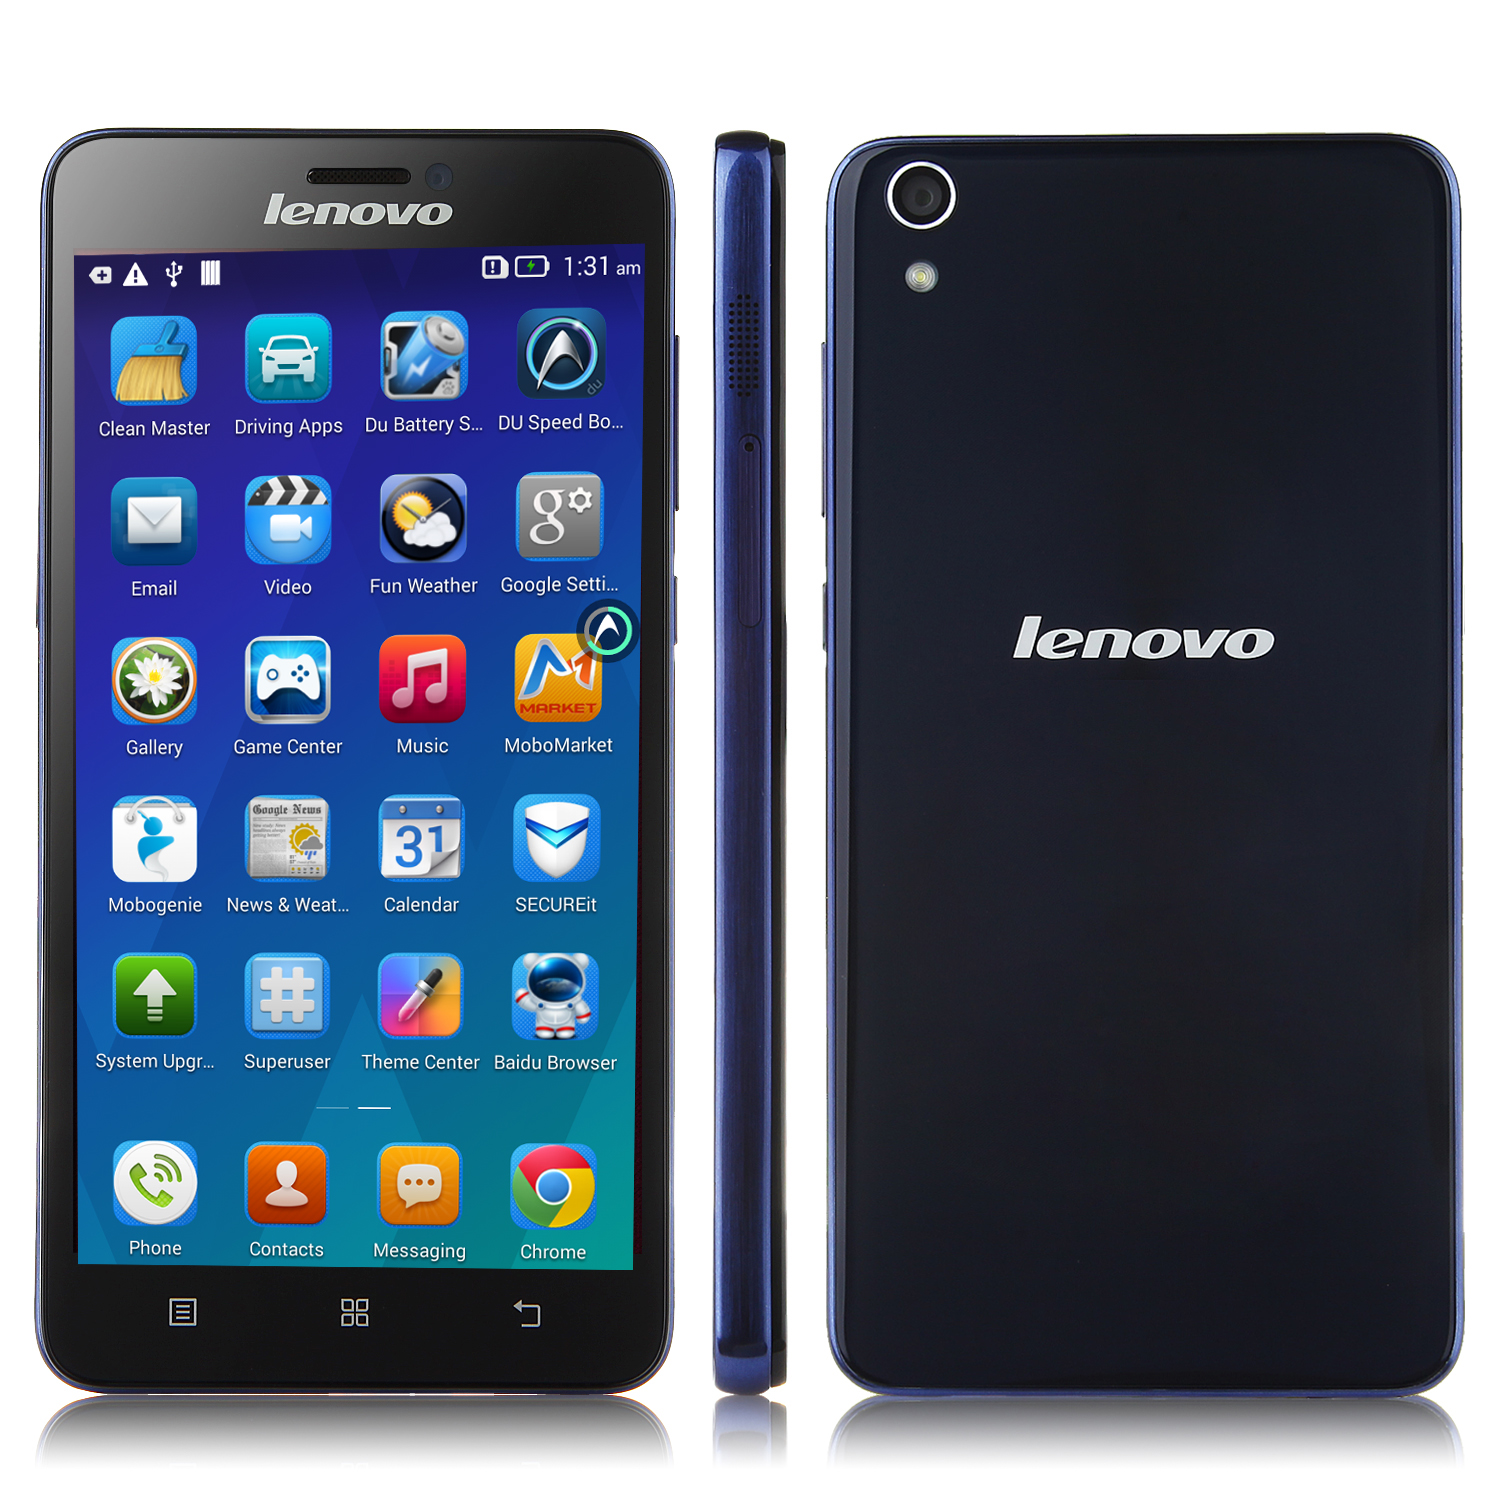 Lenovo S850 Smartphone Android 4.4 Glass Shell 5.0 Inch Gorilla Glass 16GB Dark Blue